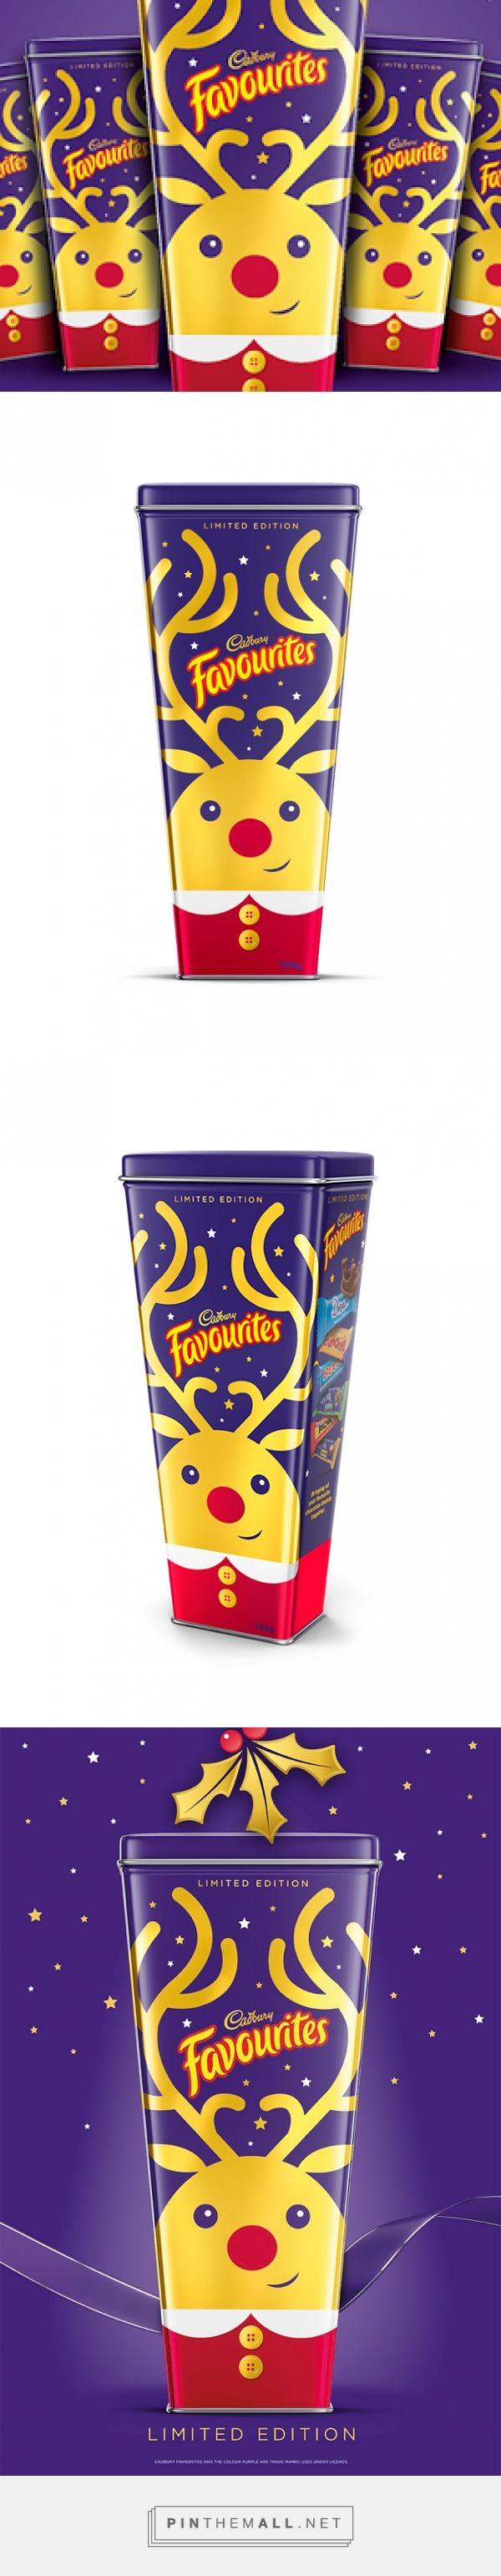 Cadbury Favourites - Limited Edition Christmas Packaging designed by Brand Society - http://www.packagingoftheworld.com/2015/12/cadbury-favourites-limited-edition.html